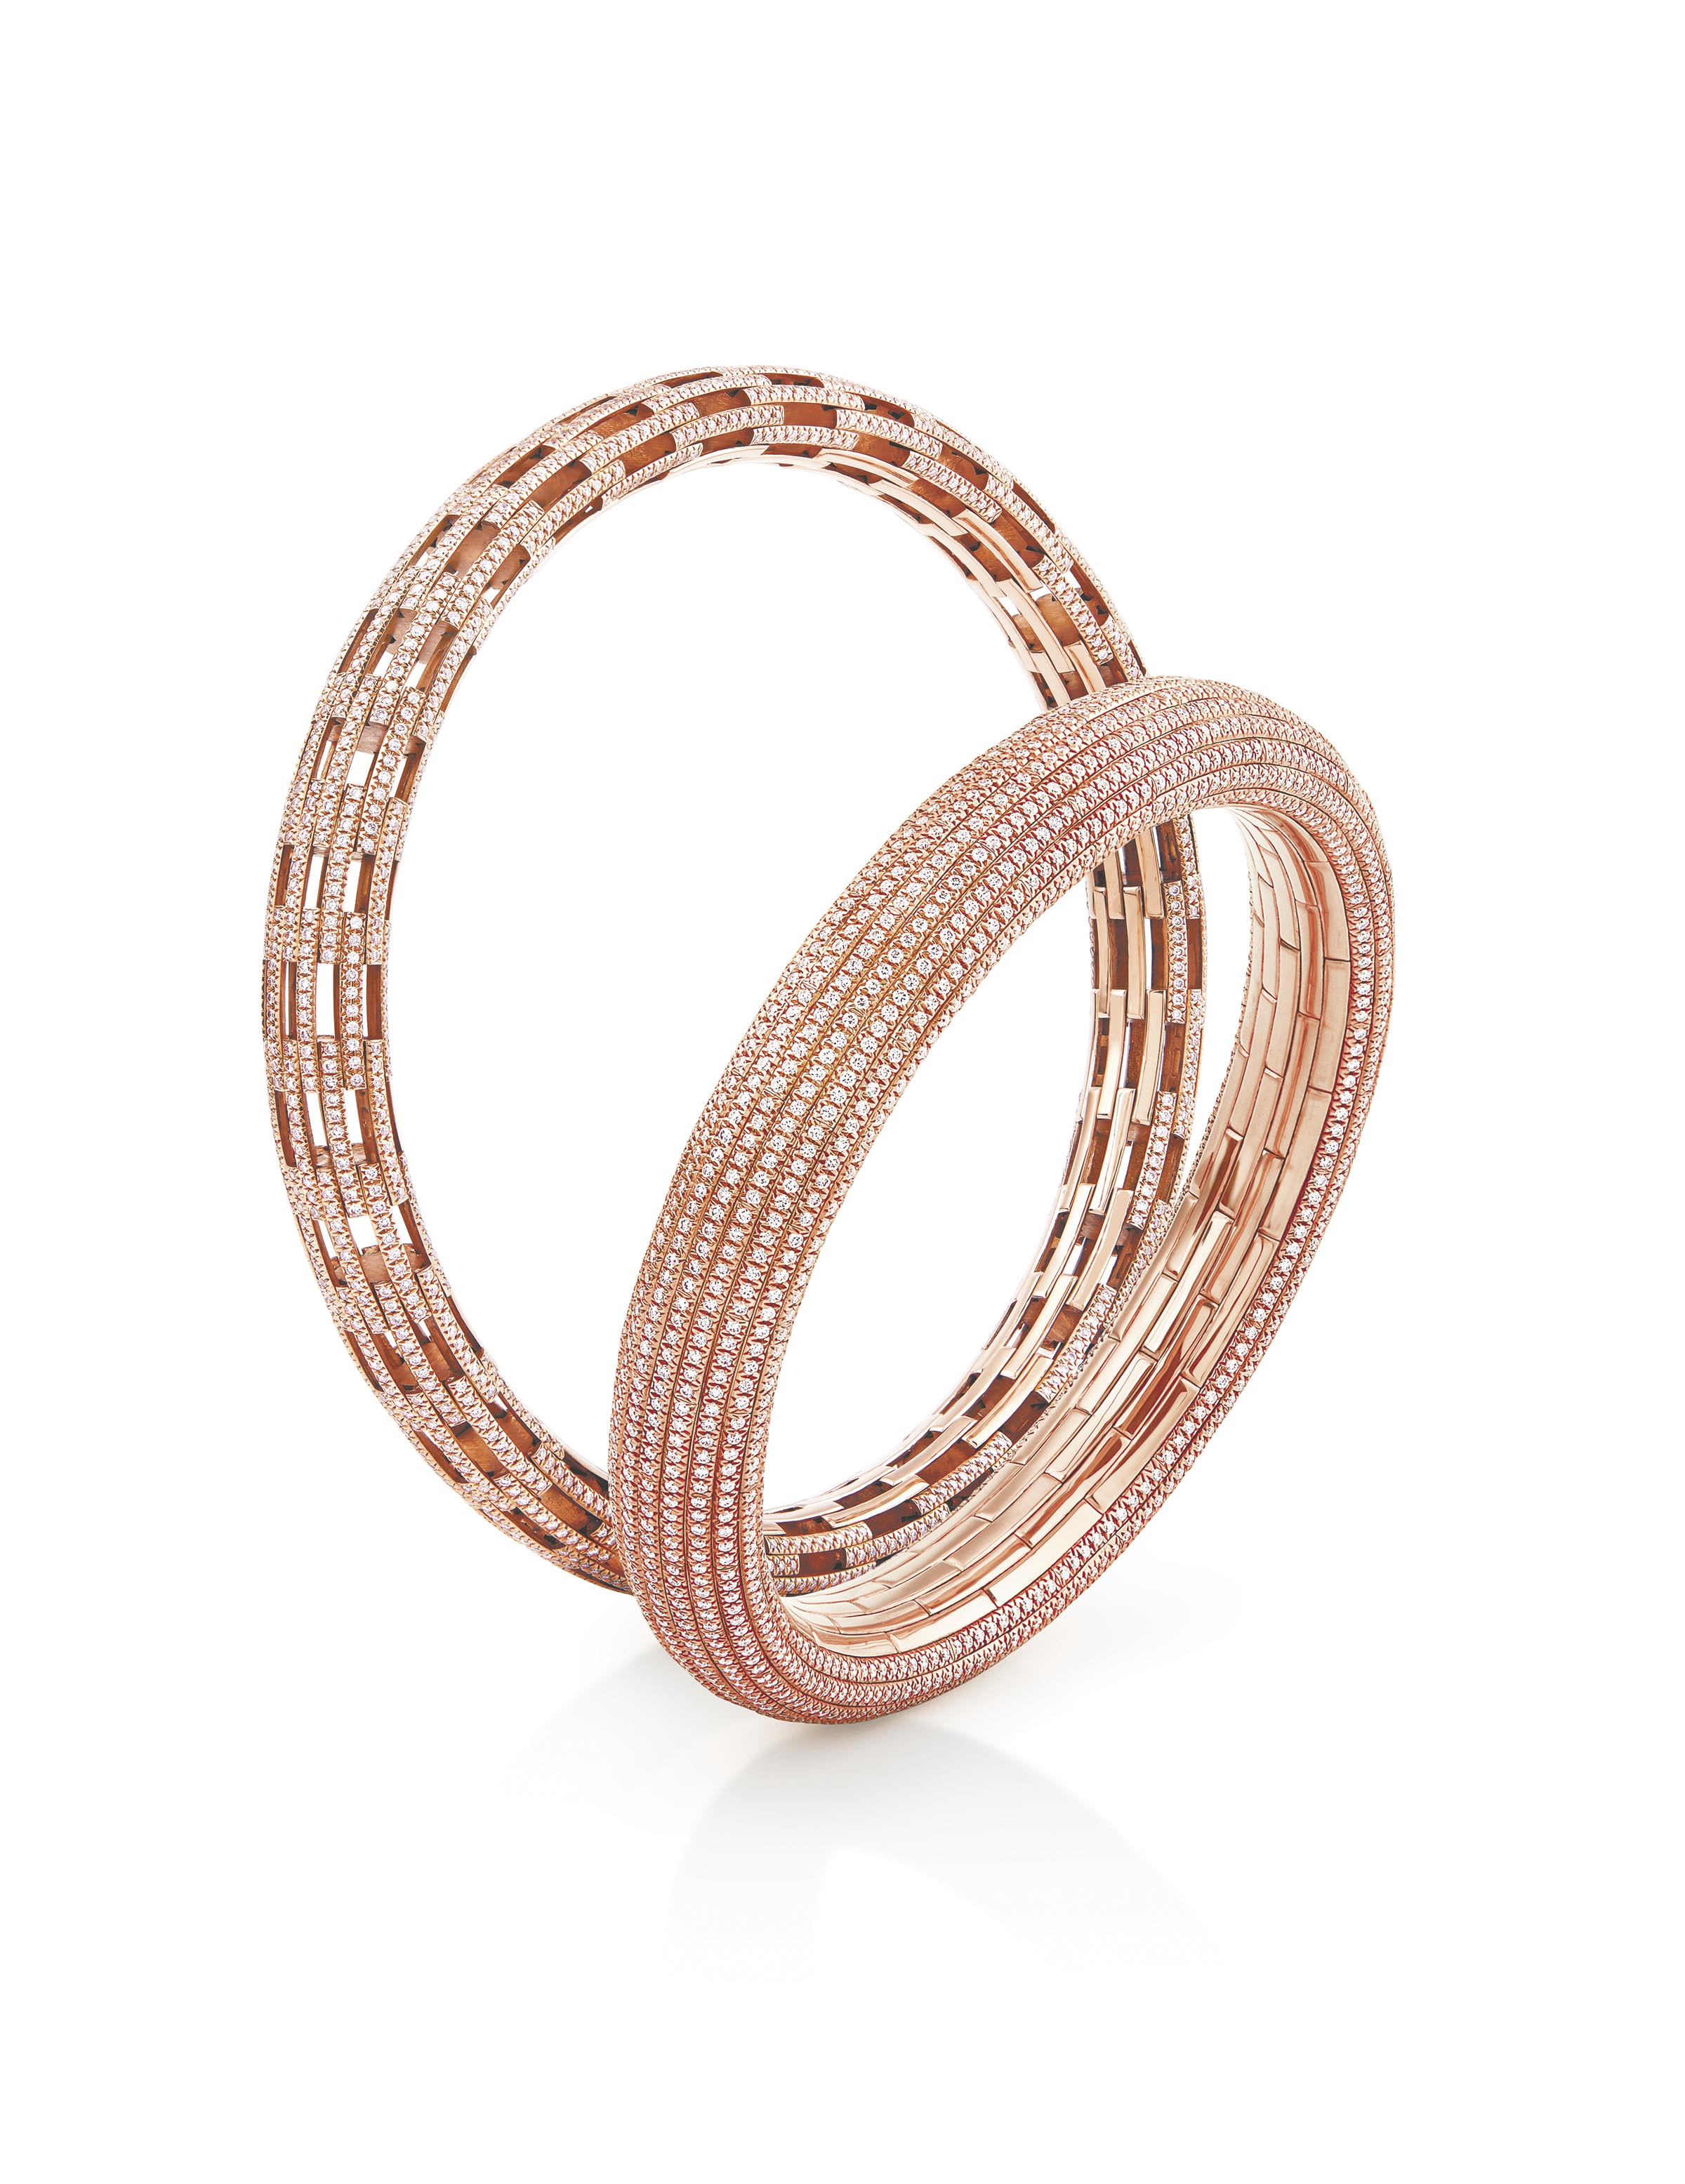 NIRAV MODI 18K Pink Gold Slim Embrace Bangle with Baby Pink Diamonds